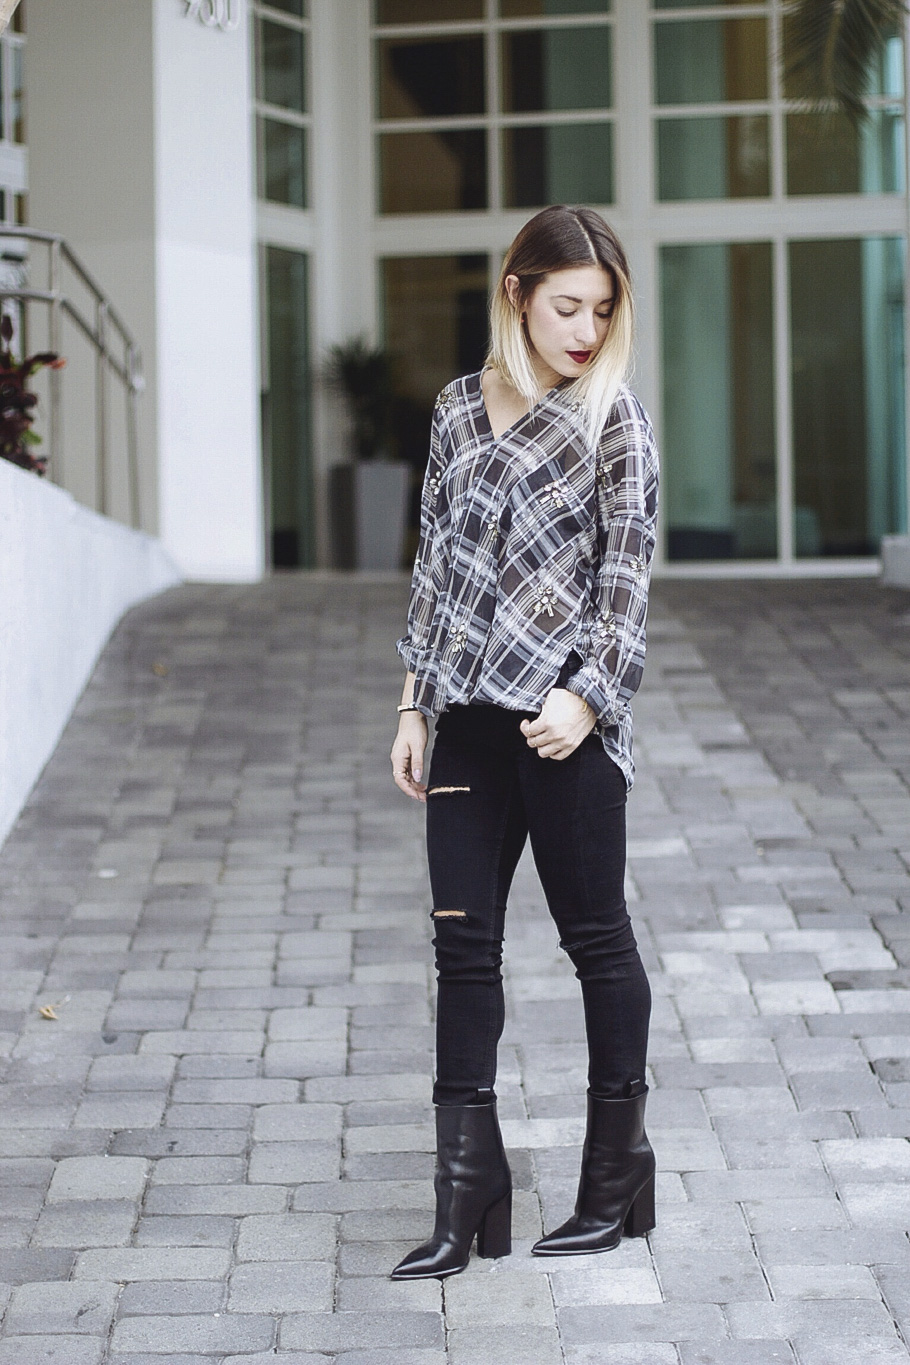 miami-fashion-bloggers_10.jpg